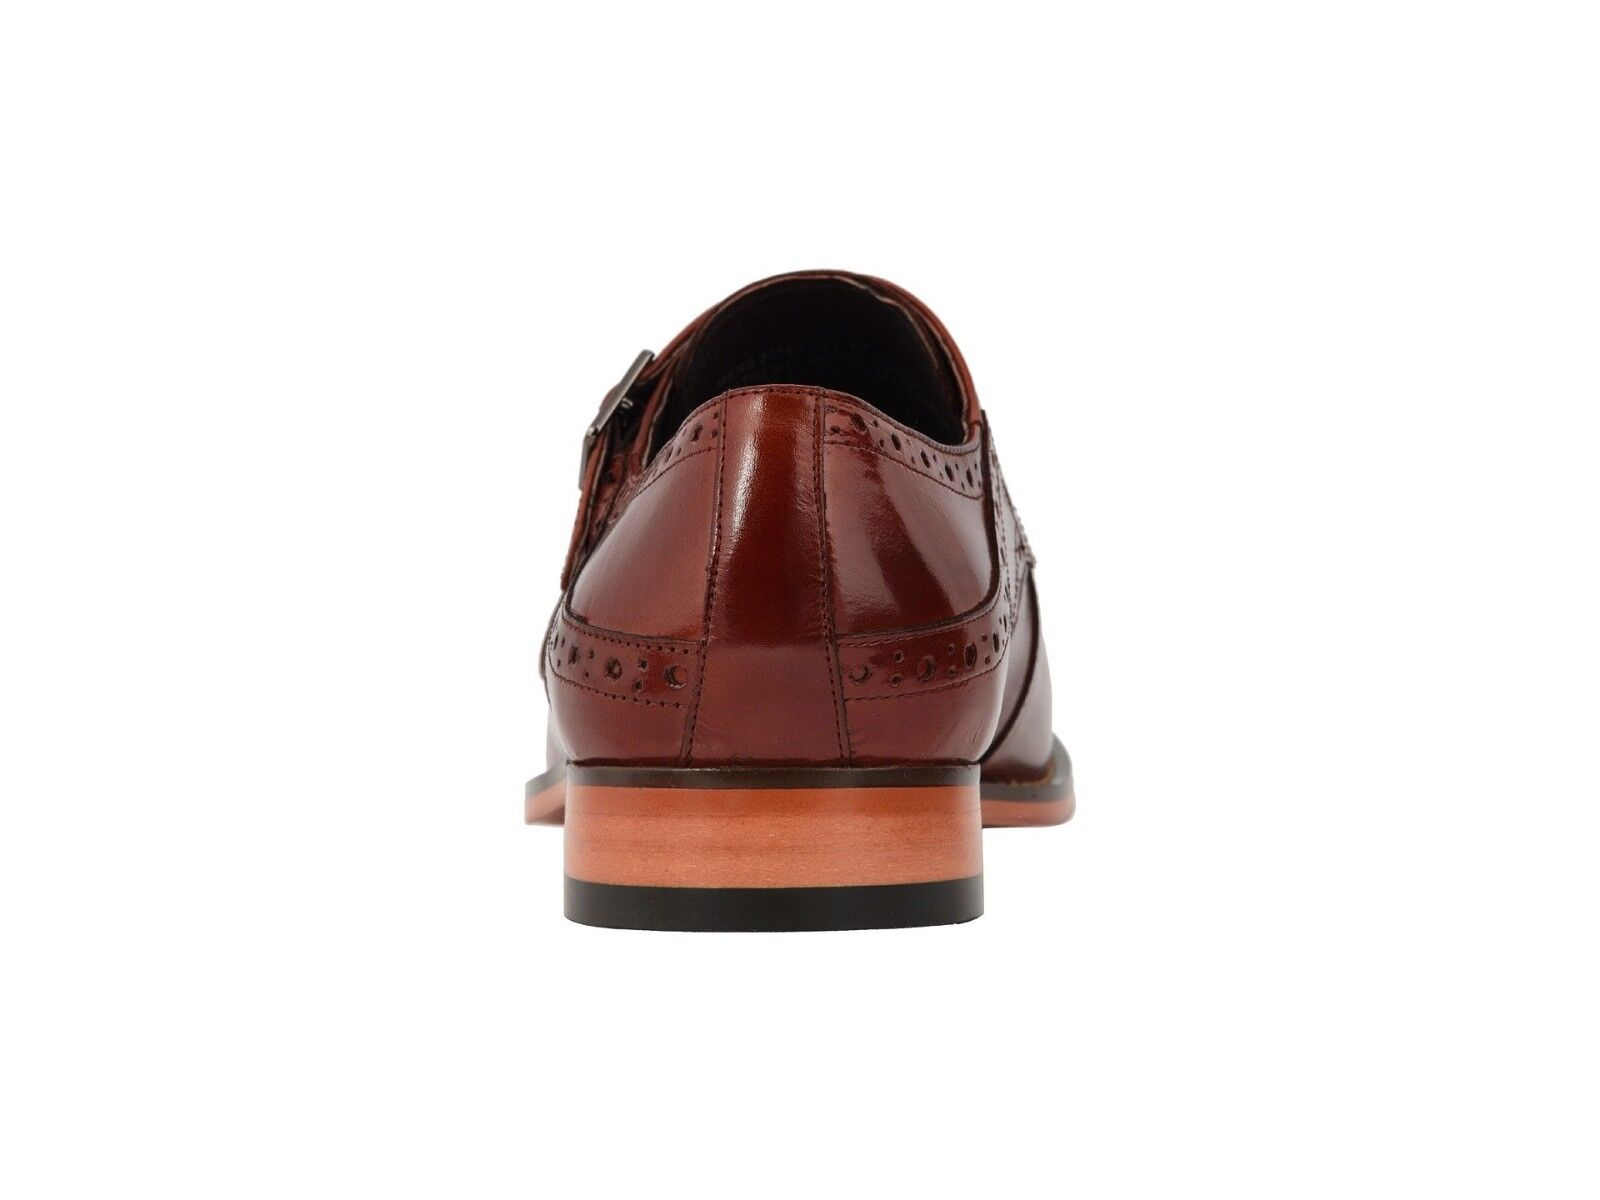 Stacy Adams Tayton Tayton Tayton Men's Cognac Double Monk Strap Cap Toe Dress scarpe 25194-221 91000f